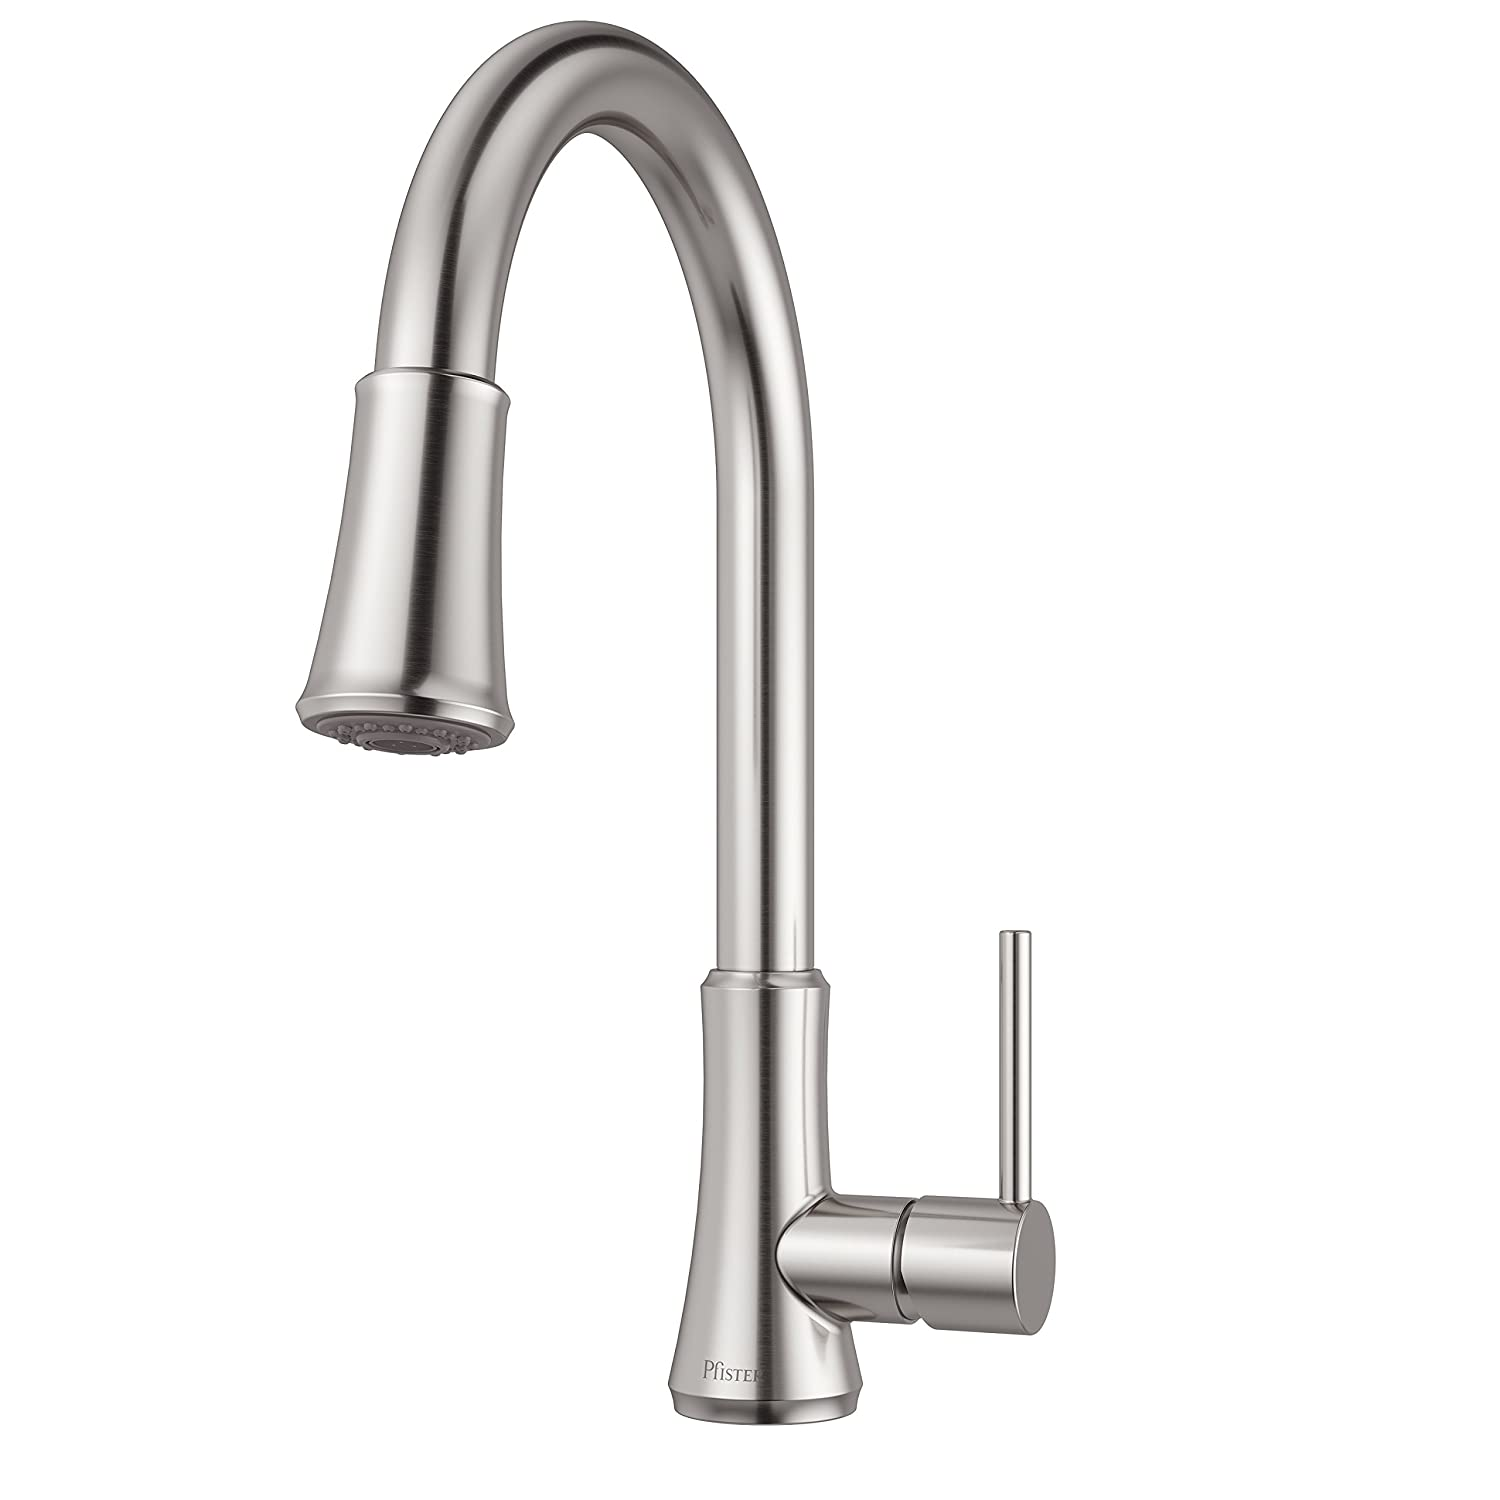 Pfister G529pf1s Pfirst Series Single Handle Pull Down Kitchen Parts Diagram For Gourmet Faucet 150 450 In Stainless Steel Water Efficient Model